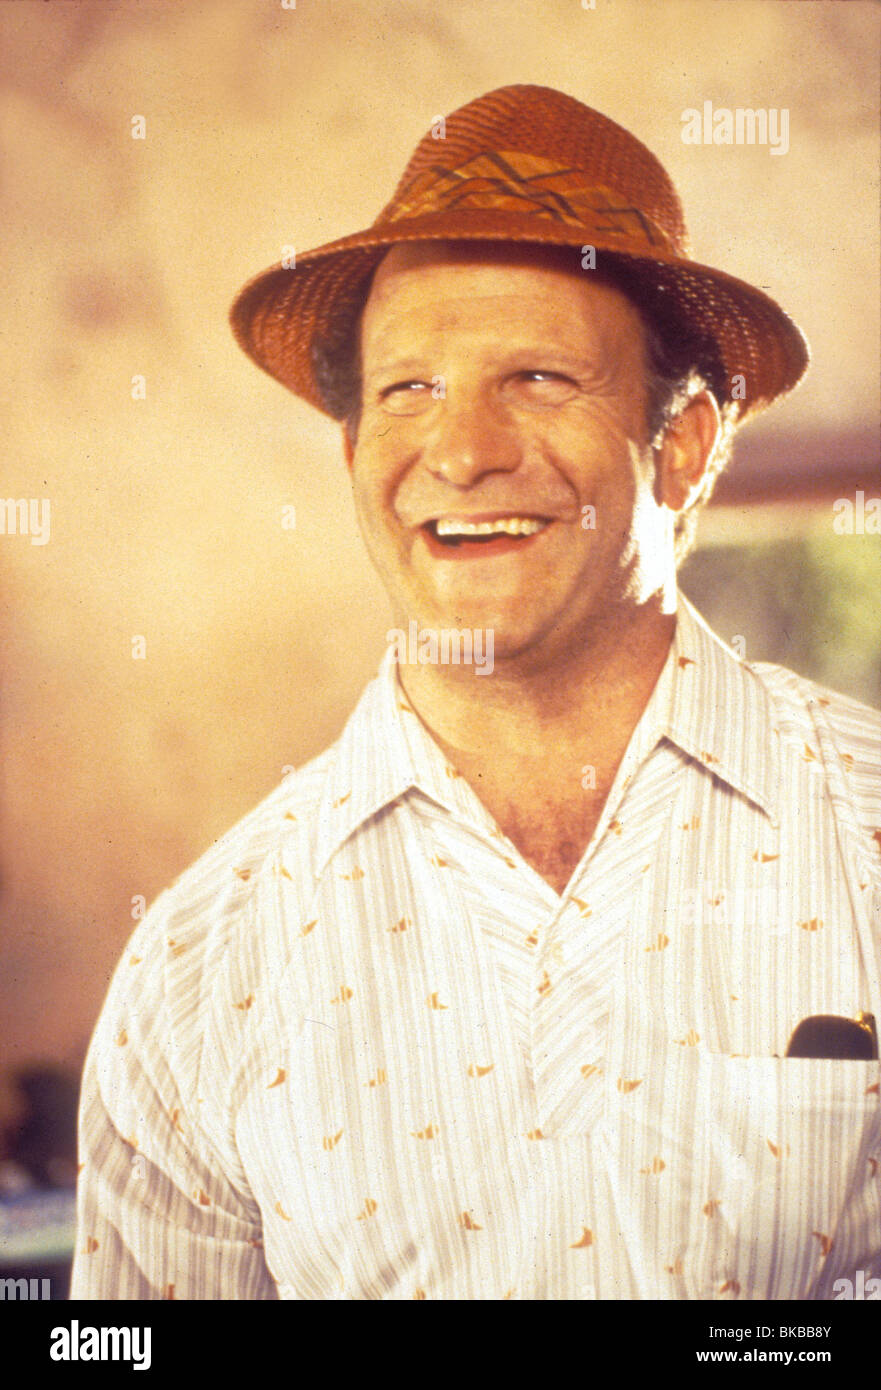 THE SCOUT -1994 ALBERT BROOKS - Stock Image